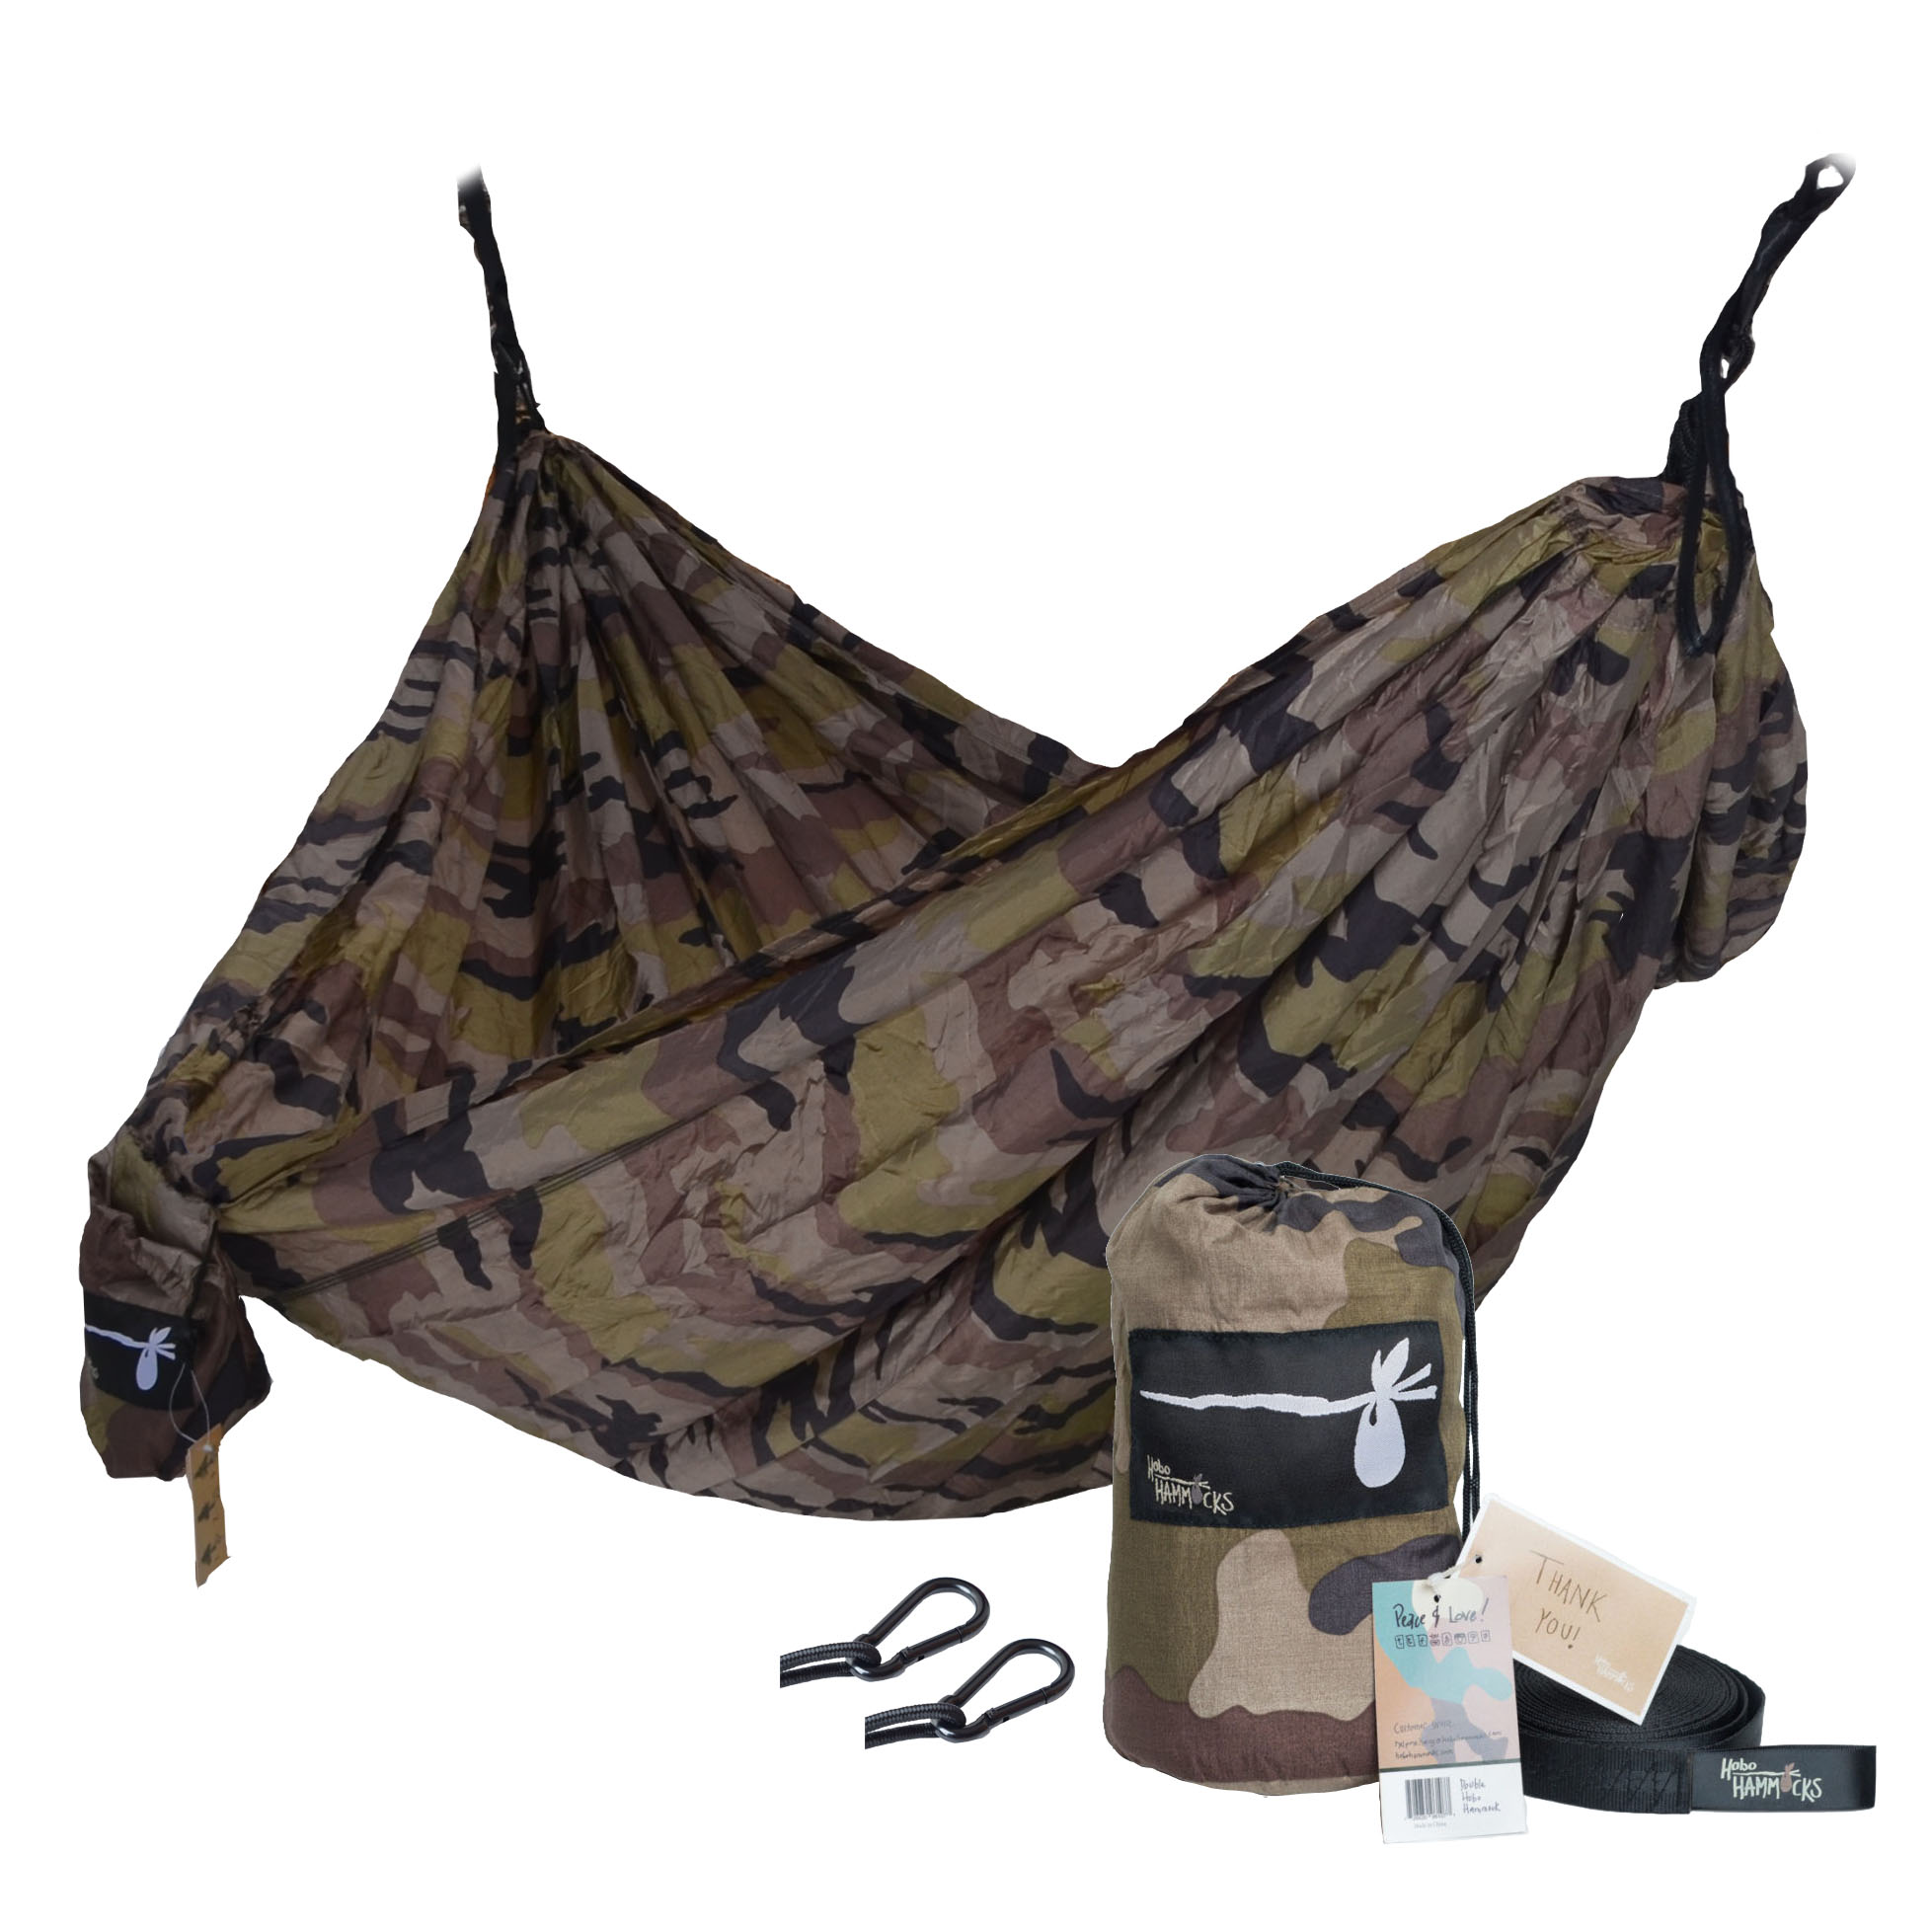 Medium image of camouflage hammock